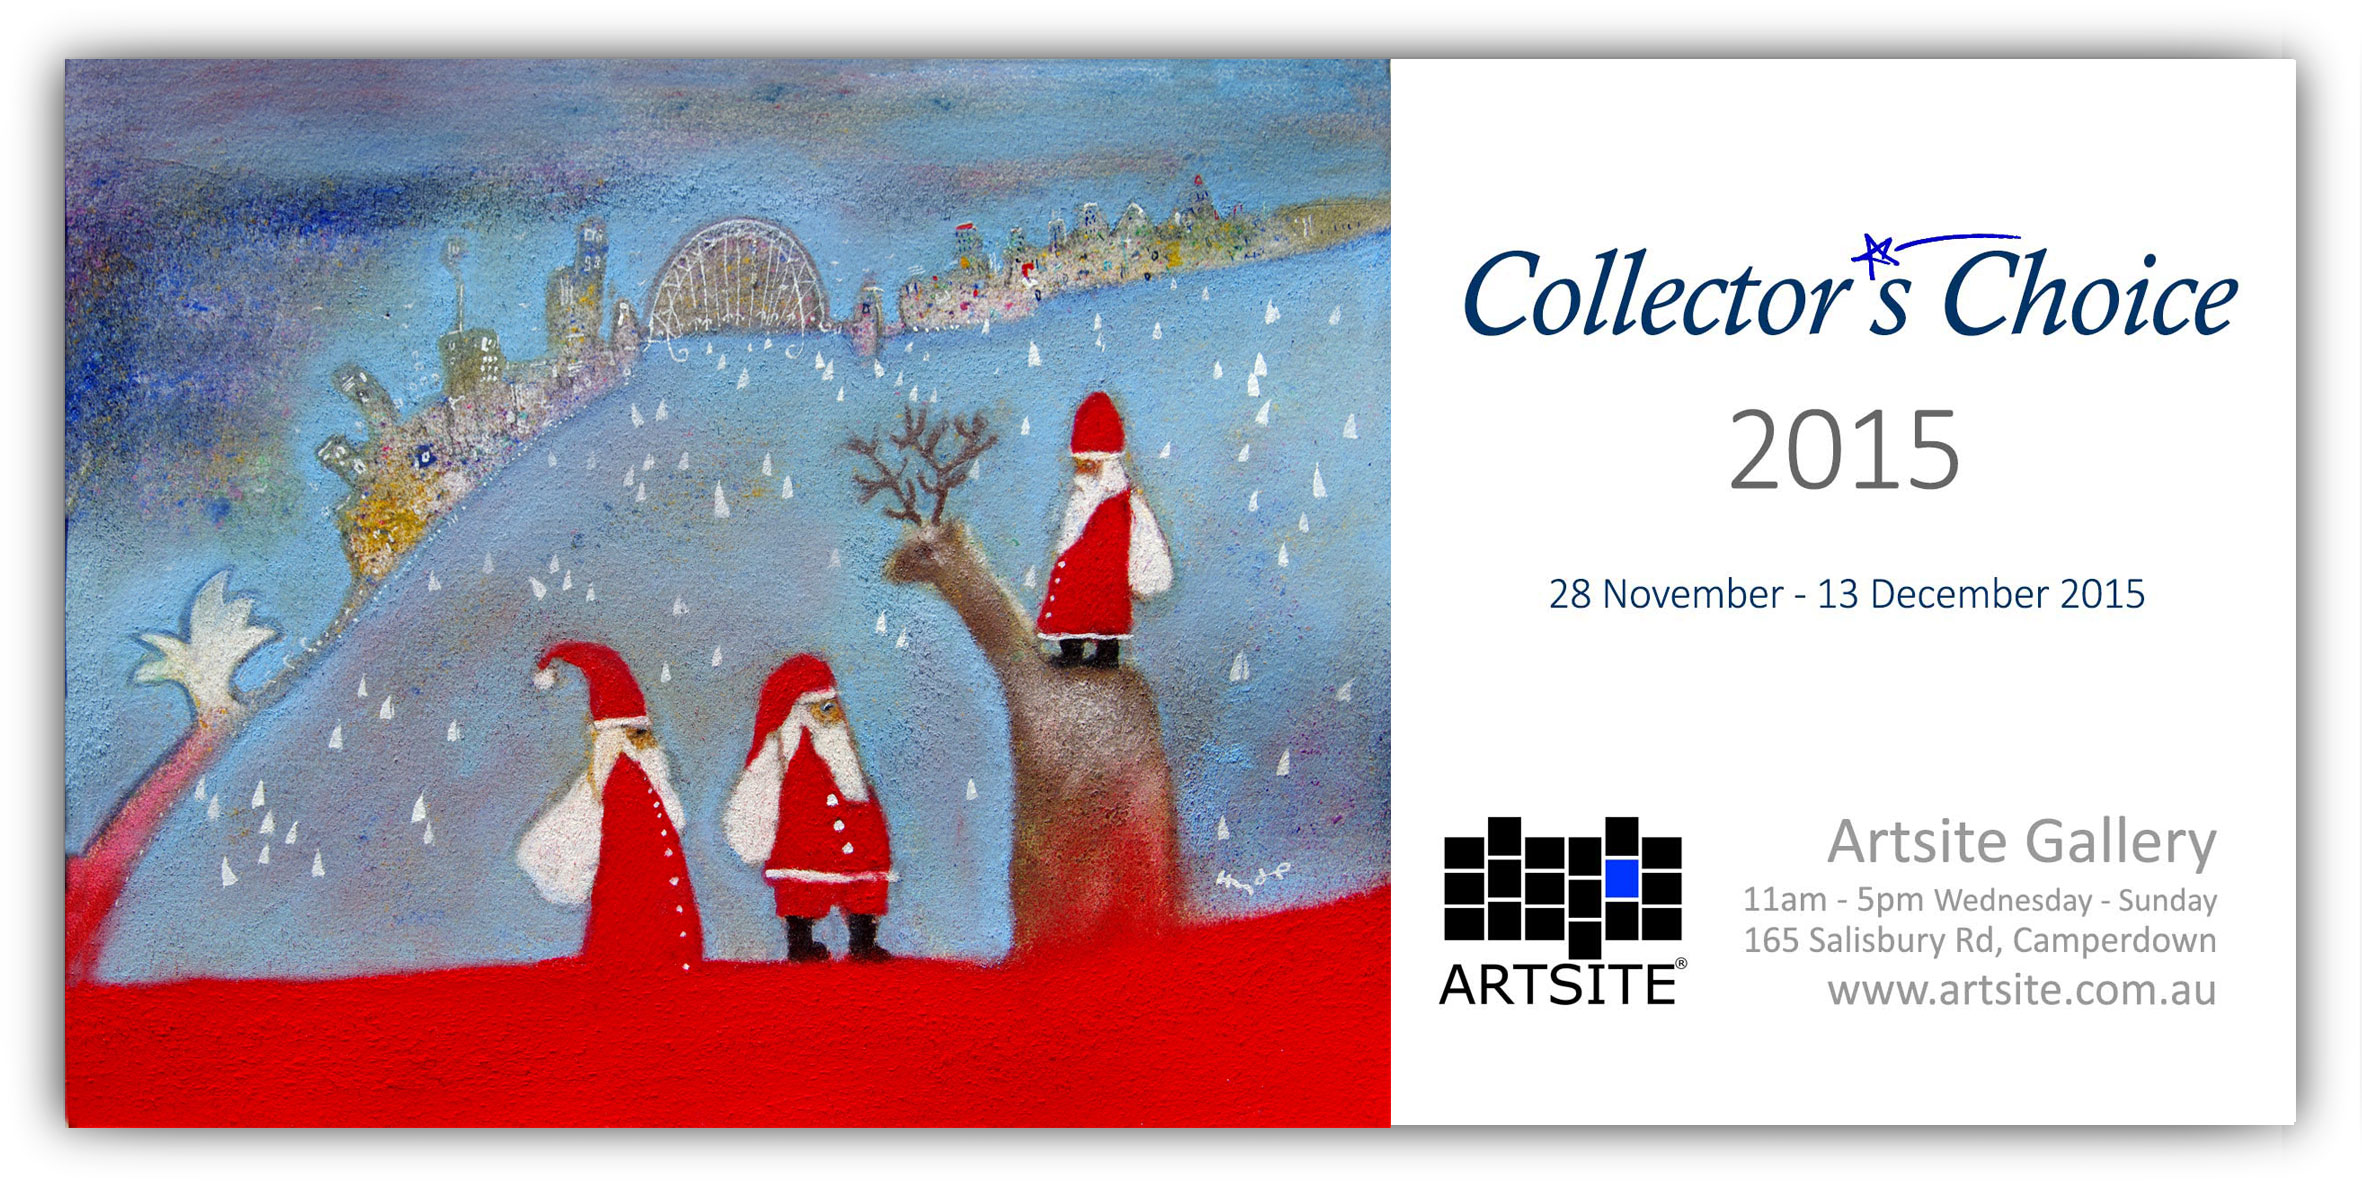 Artsite Gallery Exhibition  - Collector's Choice 2015 - 28 November - 13 December 2015 - join the artists at the opening on Sunday29th November 3-5pm - All Welcome